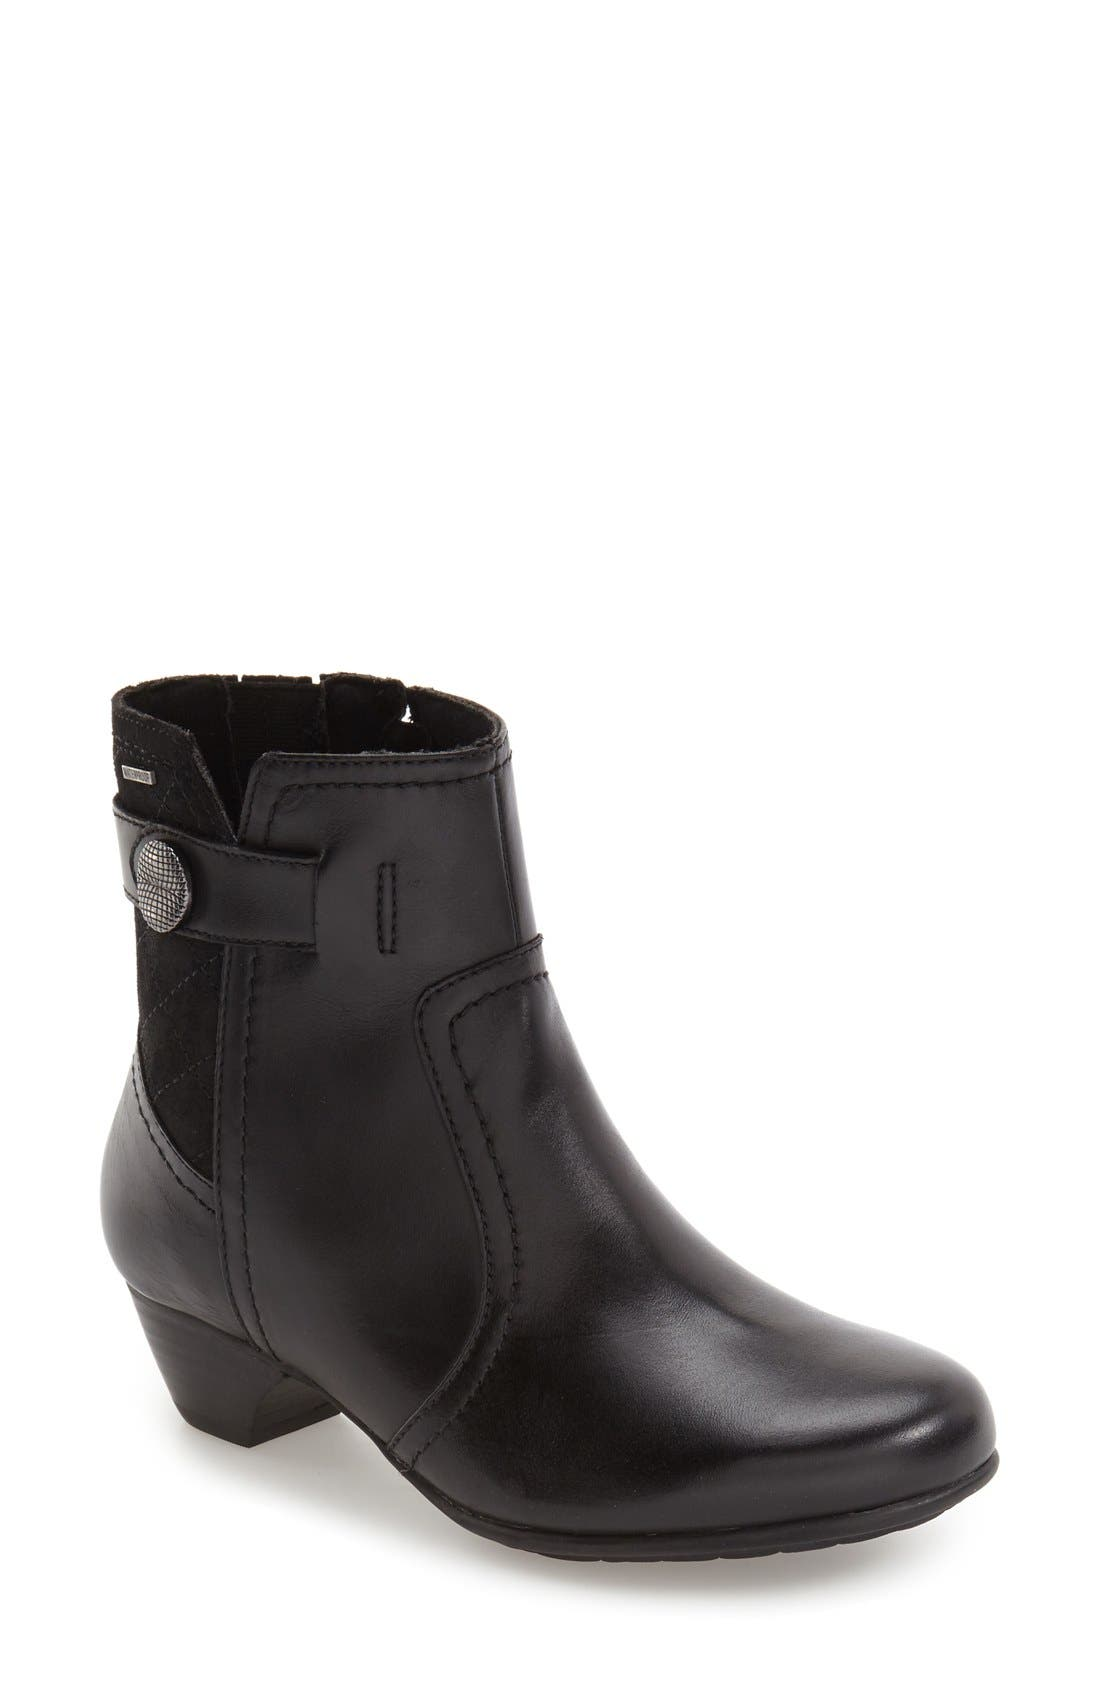 Alternate Image 1 Selected - Aravon 'Patrina' Waterproof Zip Bootie (Women)